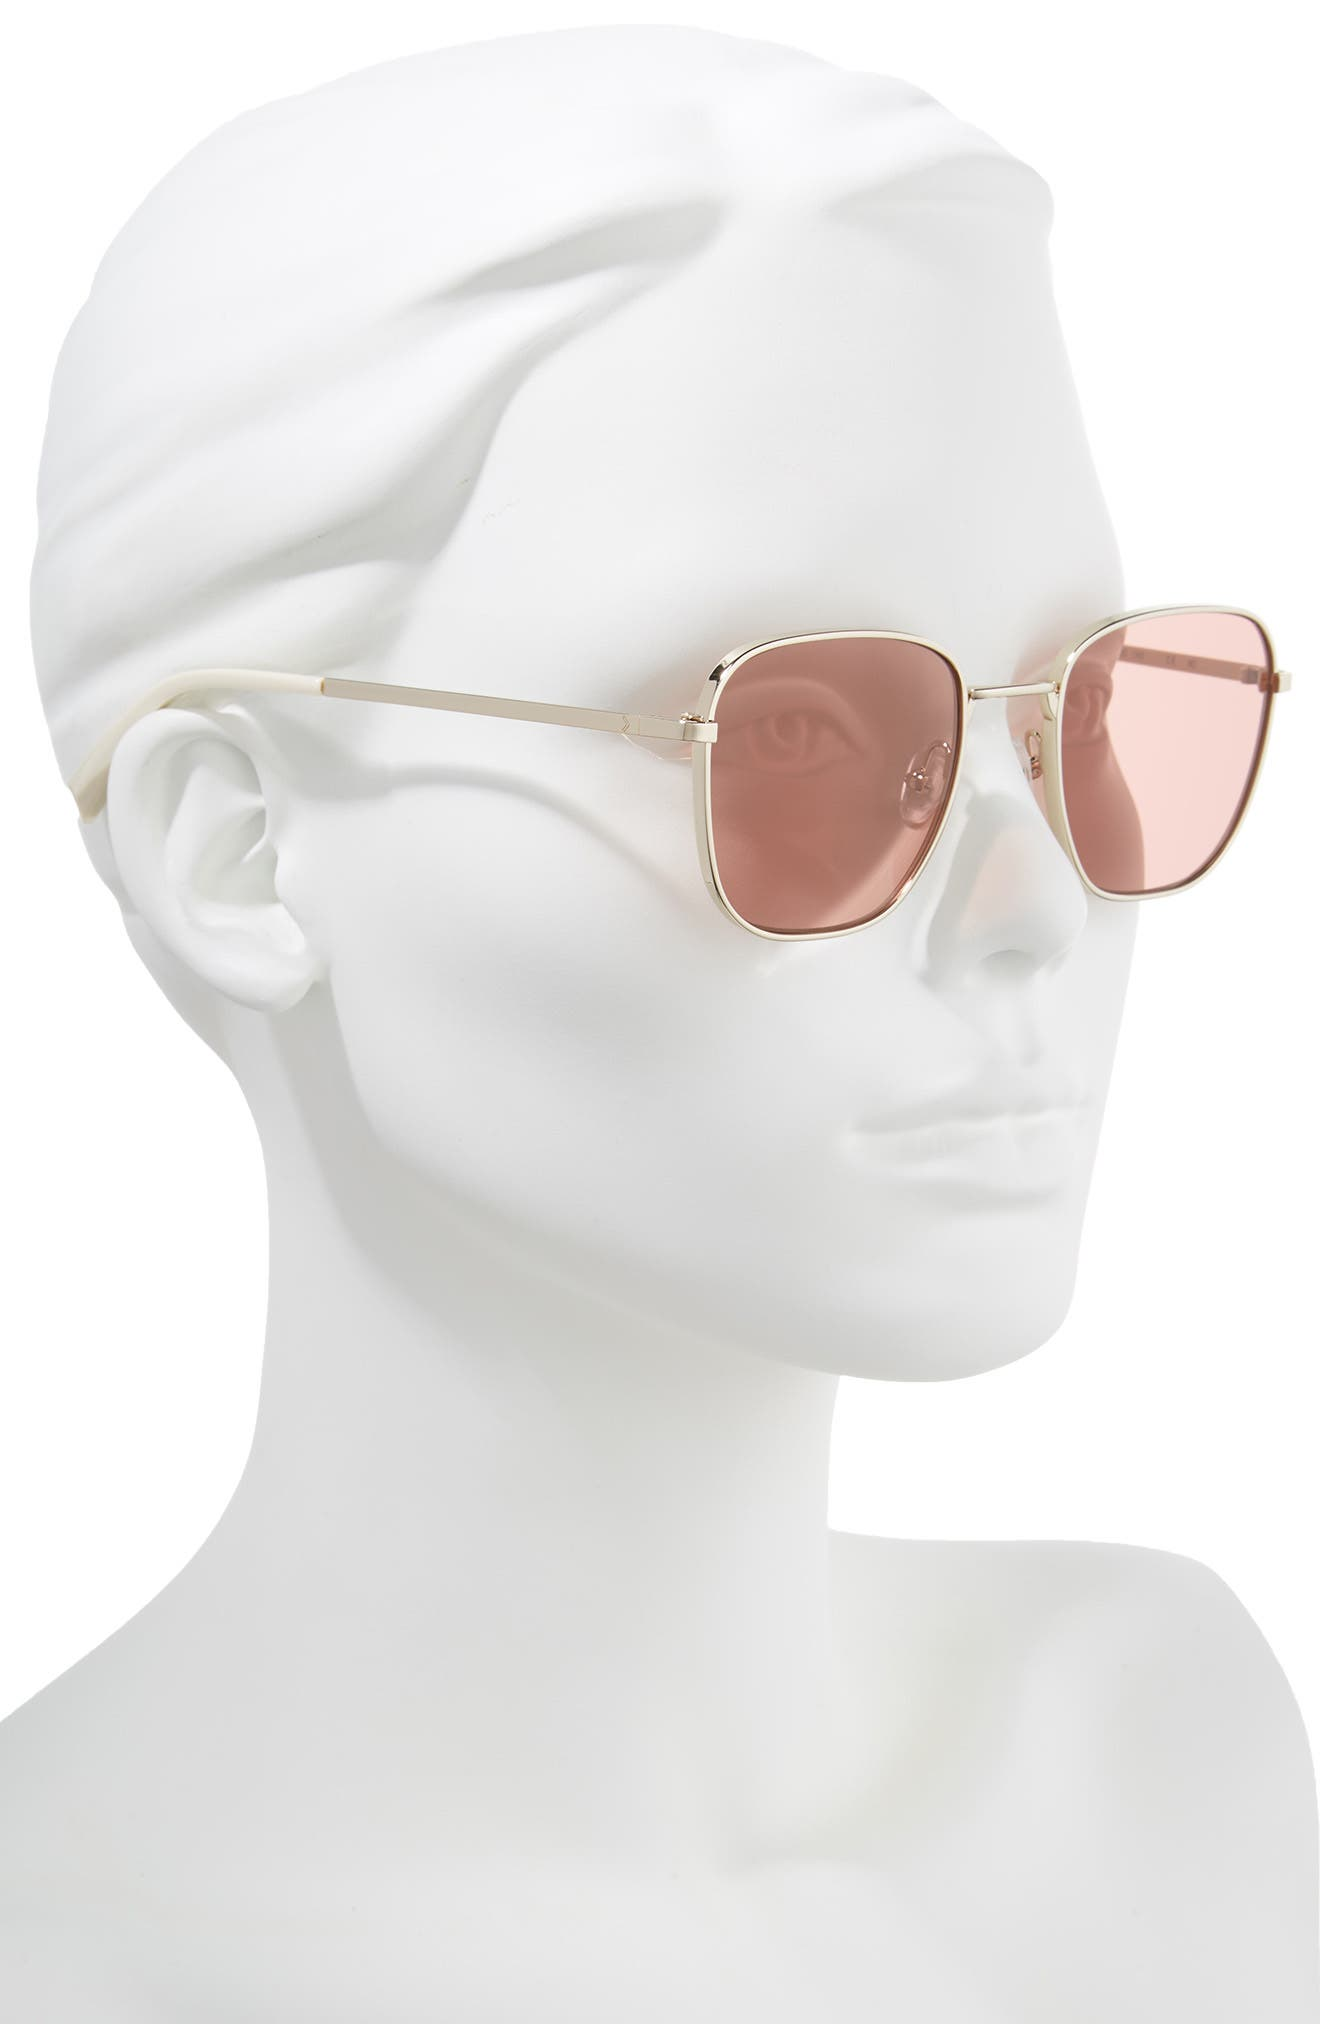 Dana 50mm Square Sunglasses,                             Alternate thumbnail 2, color,                             LIGHT GOLD/ PINK ROSE